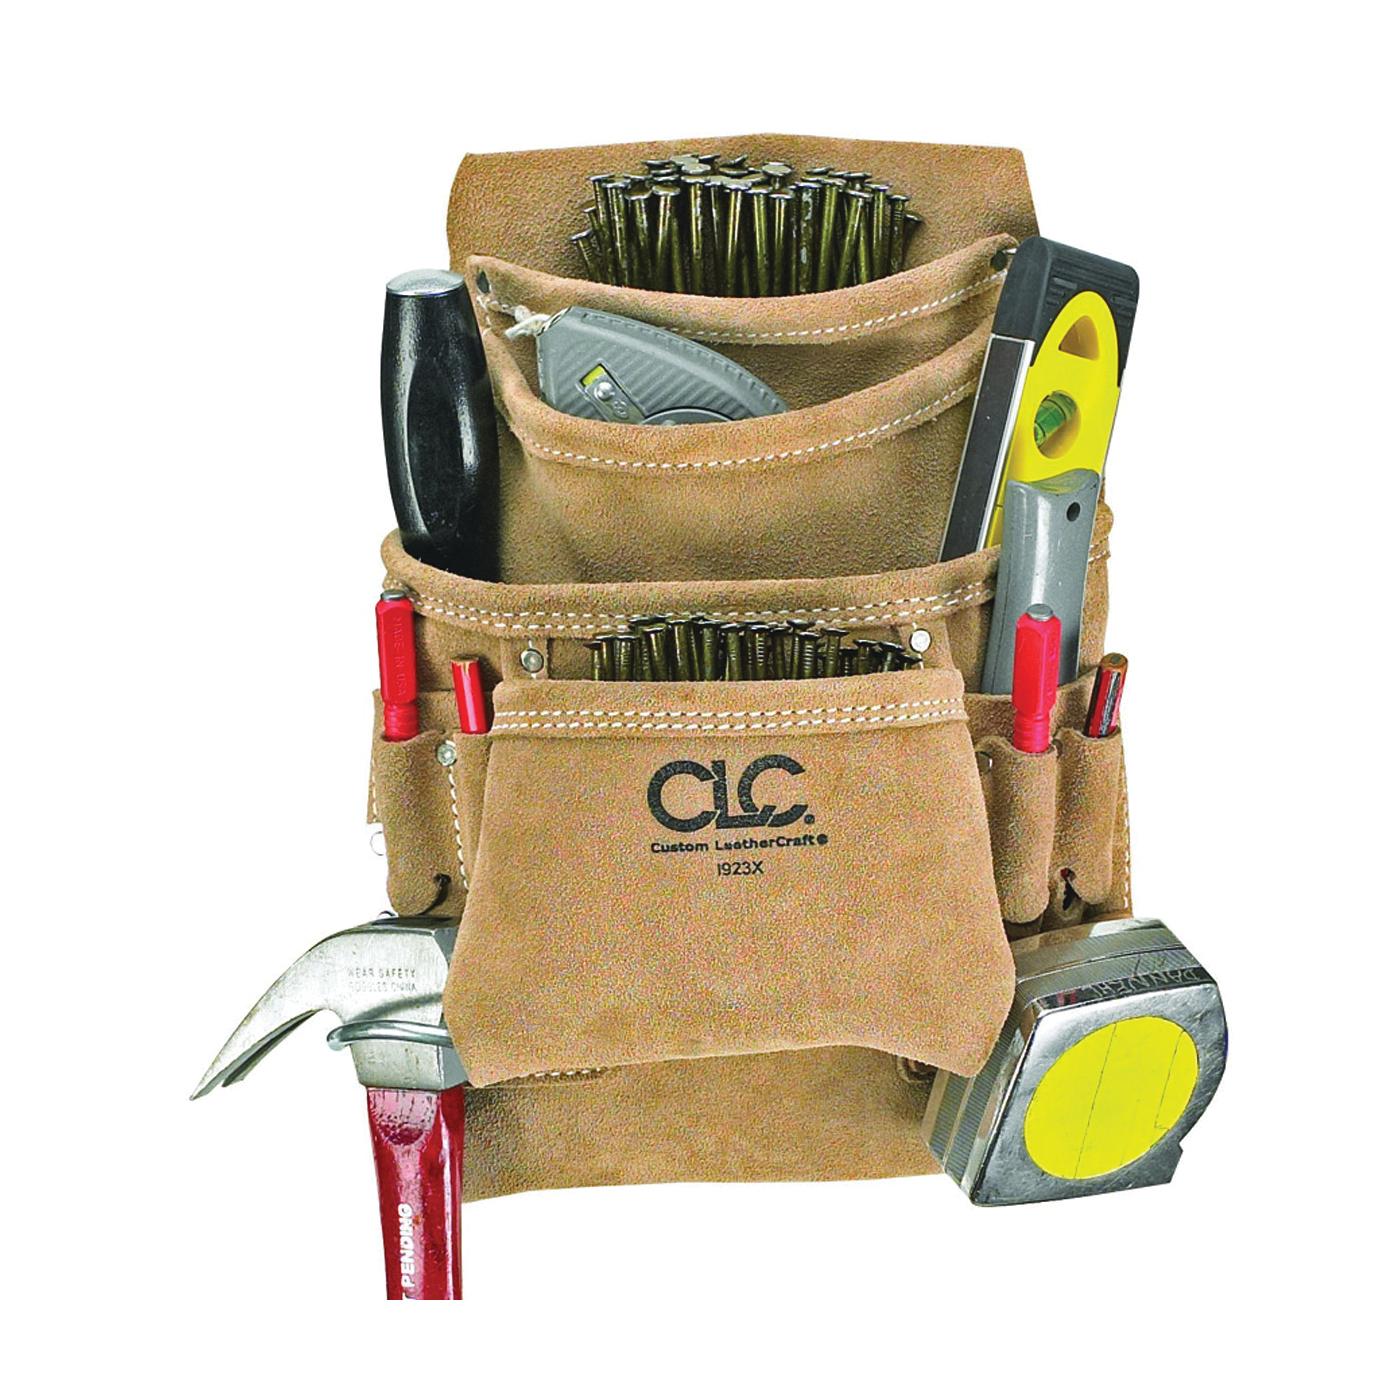 Picture of CLC Tool Works I923X Nail and Tool Bag, 10 -Pocket, Suede Leather, Tan, 20-1/2 in W, 12 in H